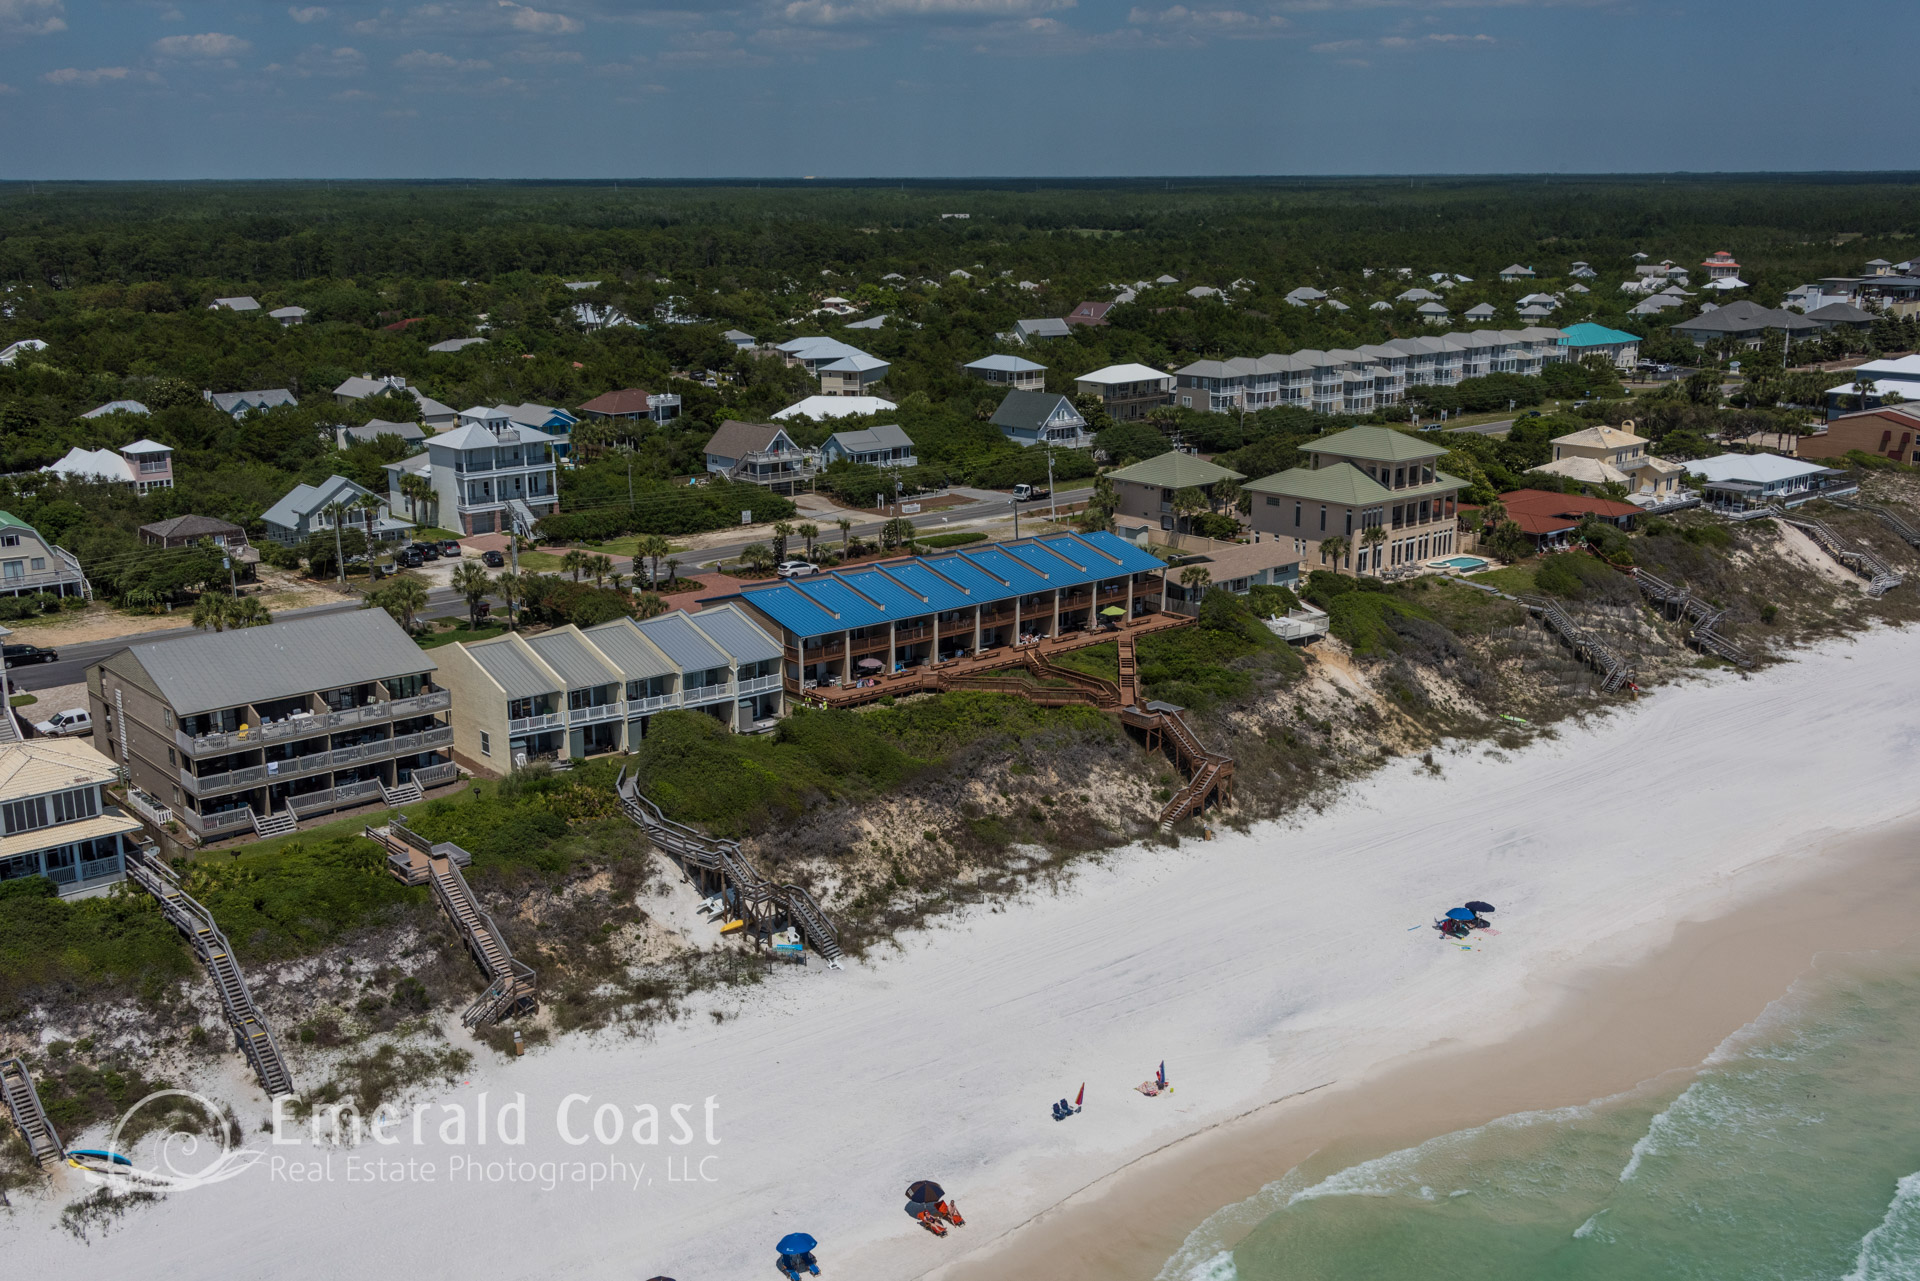 aerial photo of Blue Nine condominium Seacrest Beach, Floida